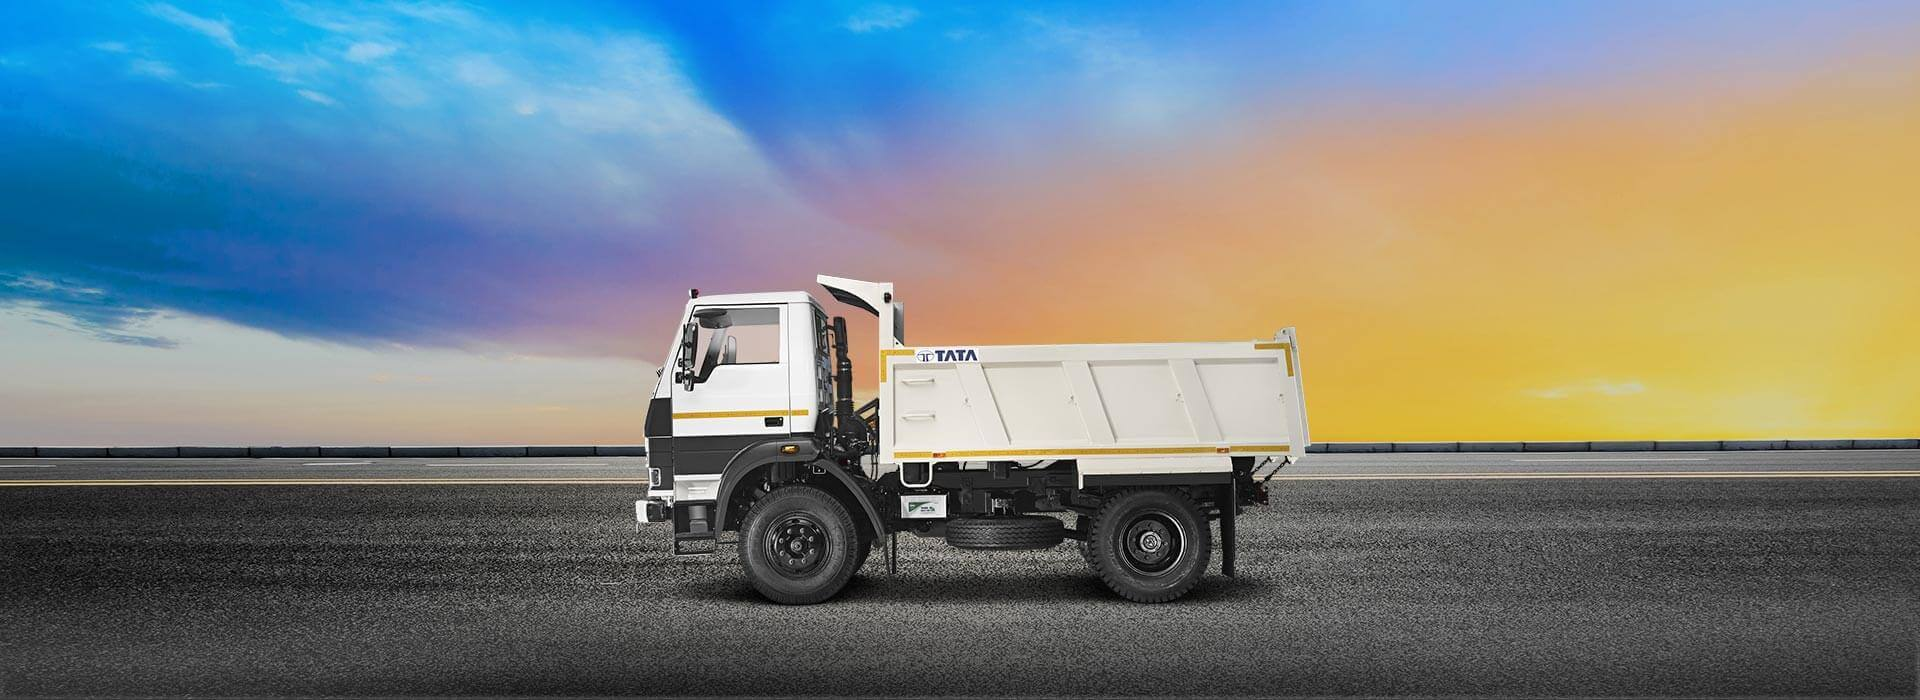 Tata Tippers